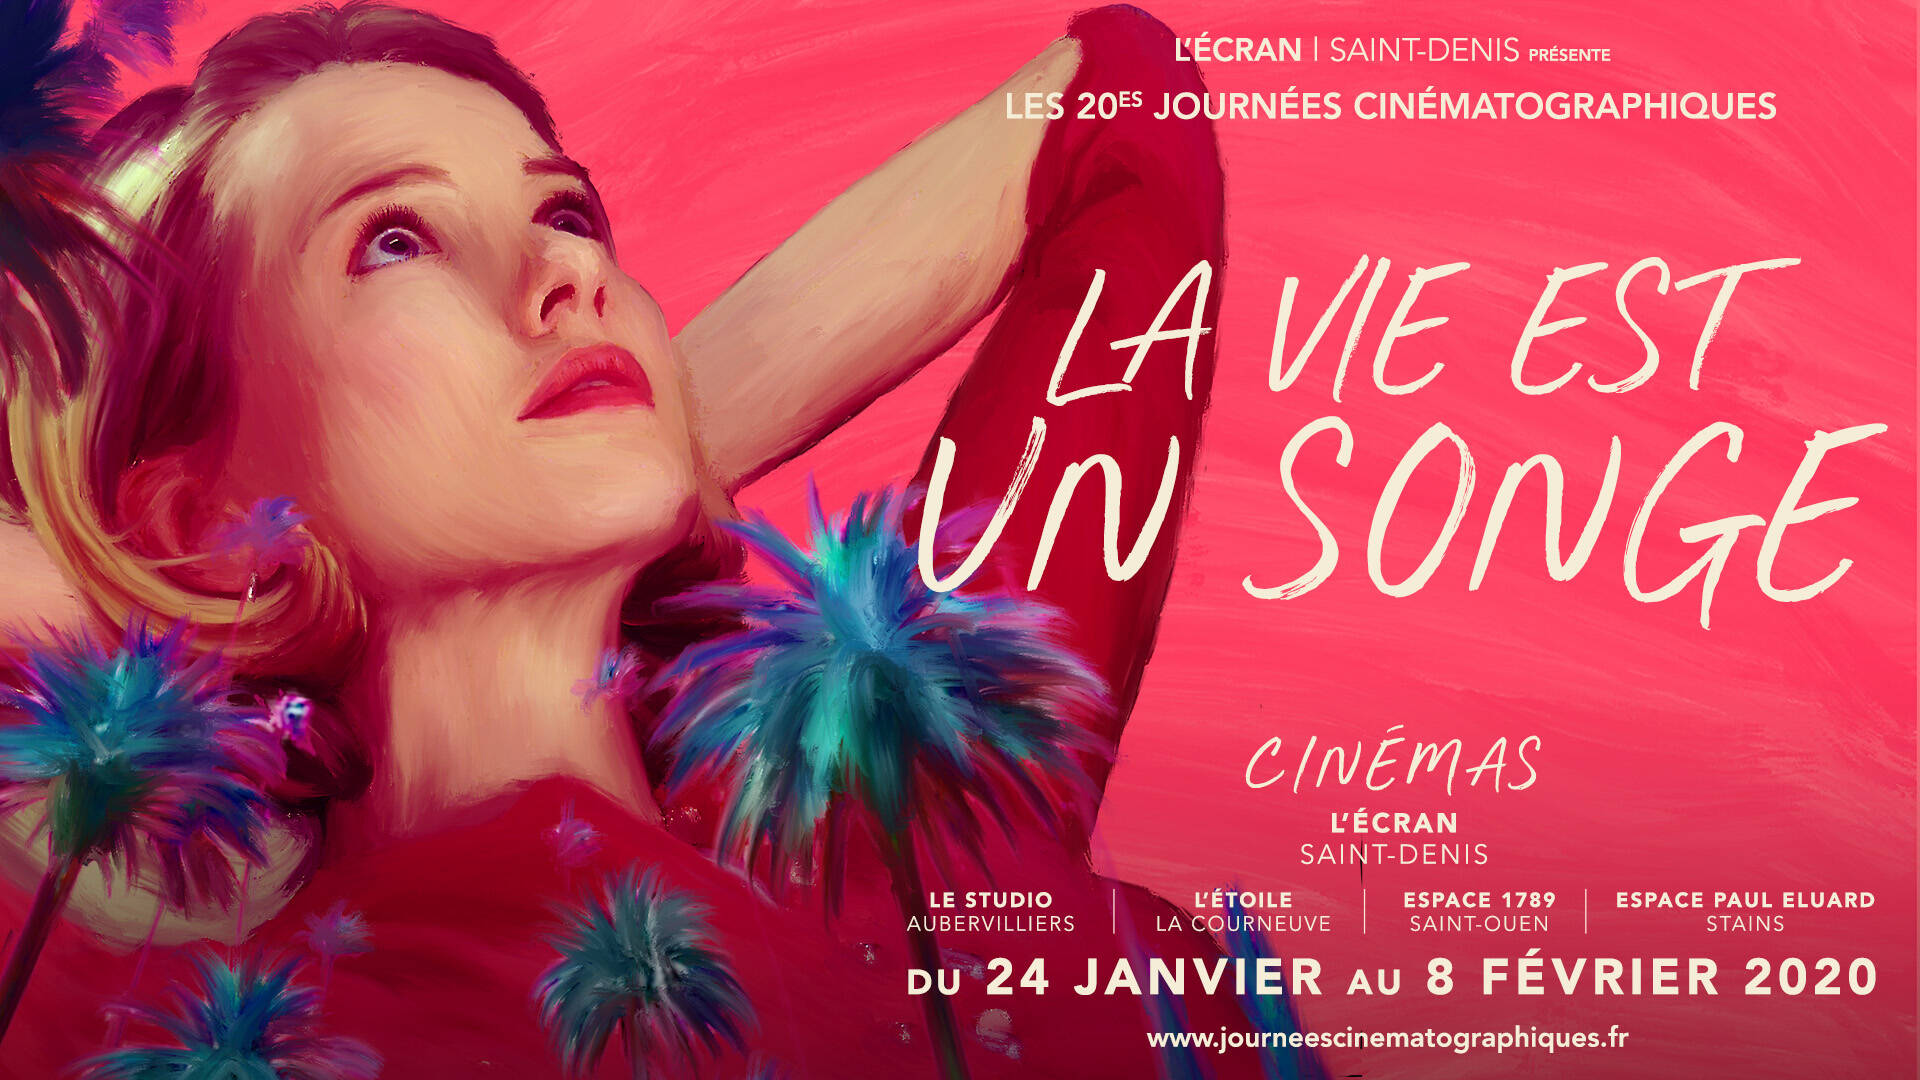 20th cinematographic days at the screen cinema in Saint-Denis